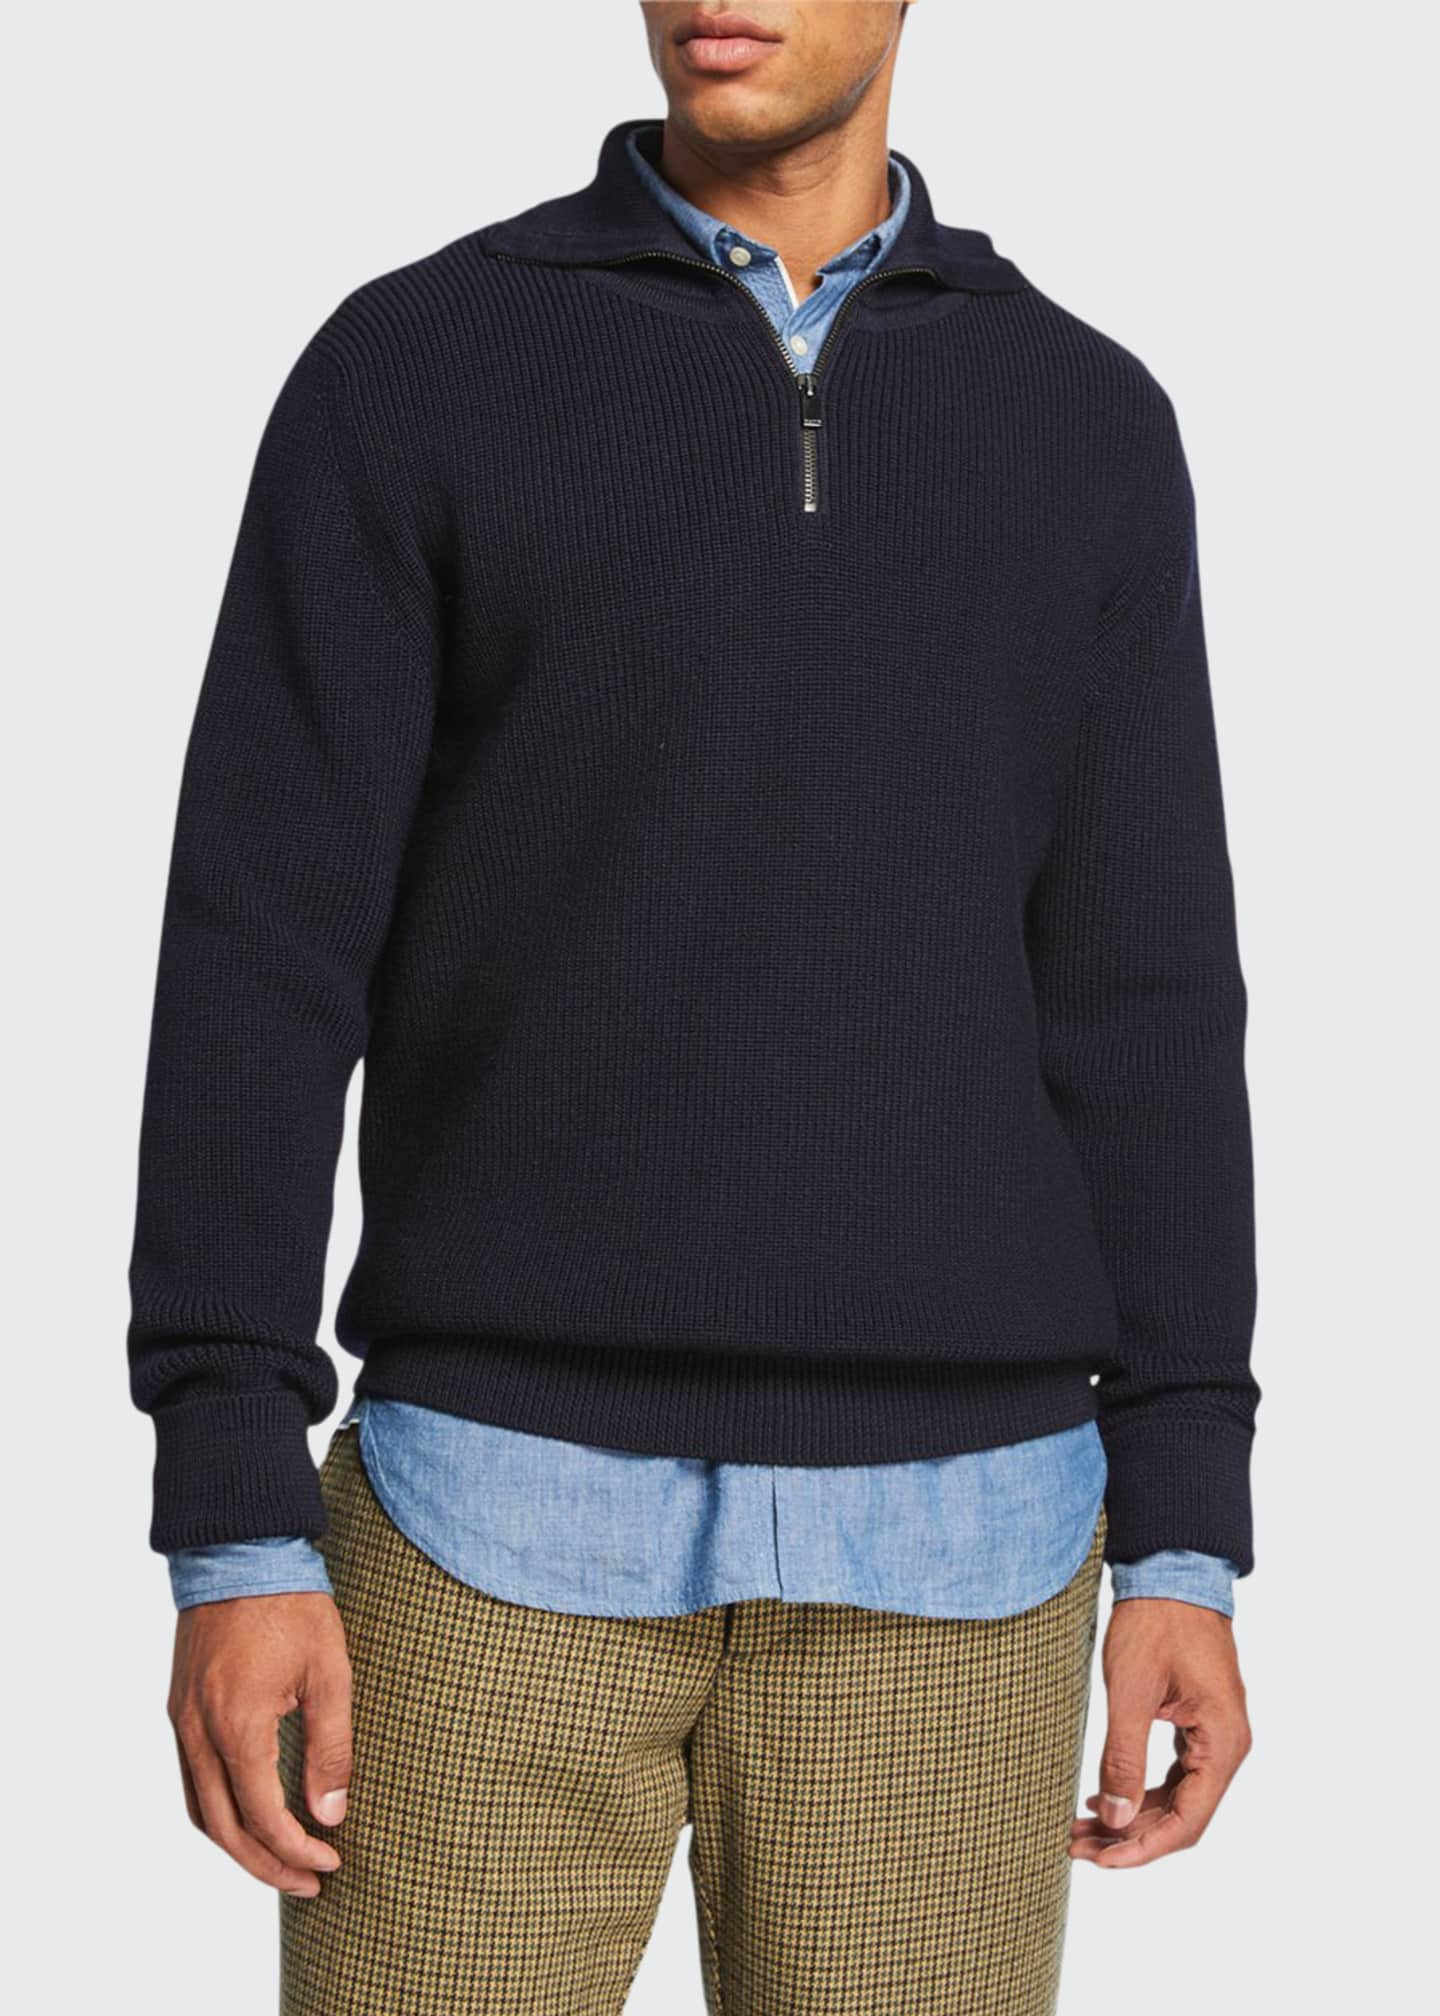 Salle Privee Men's Rikard Merino Wool Ribbed Quarter-Zip